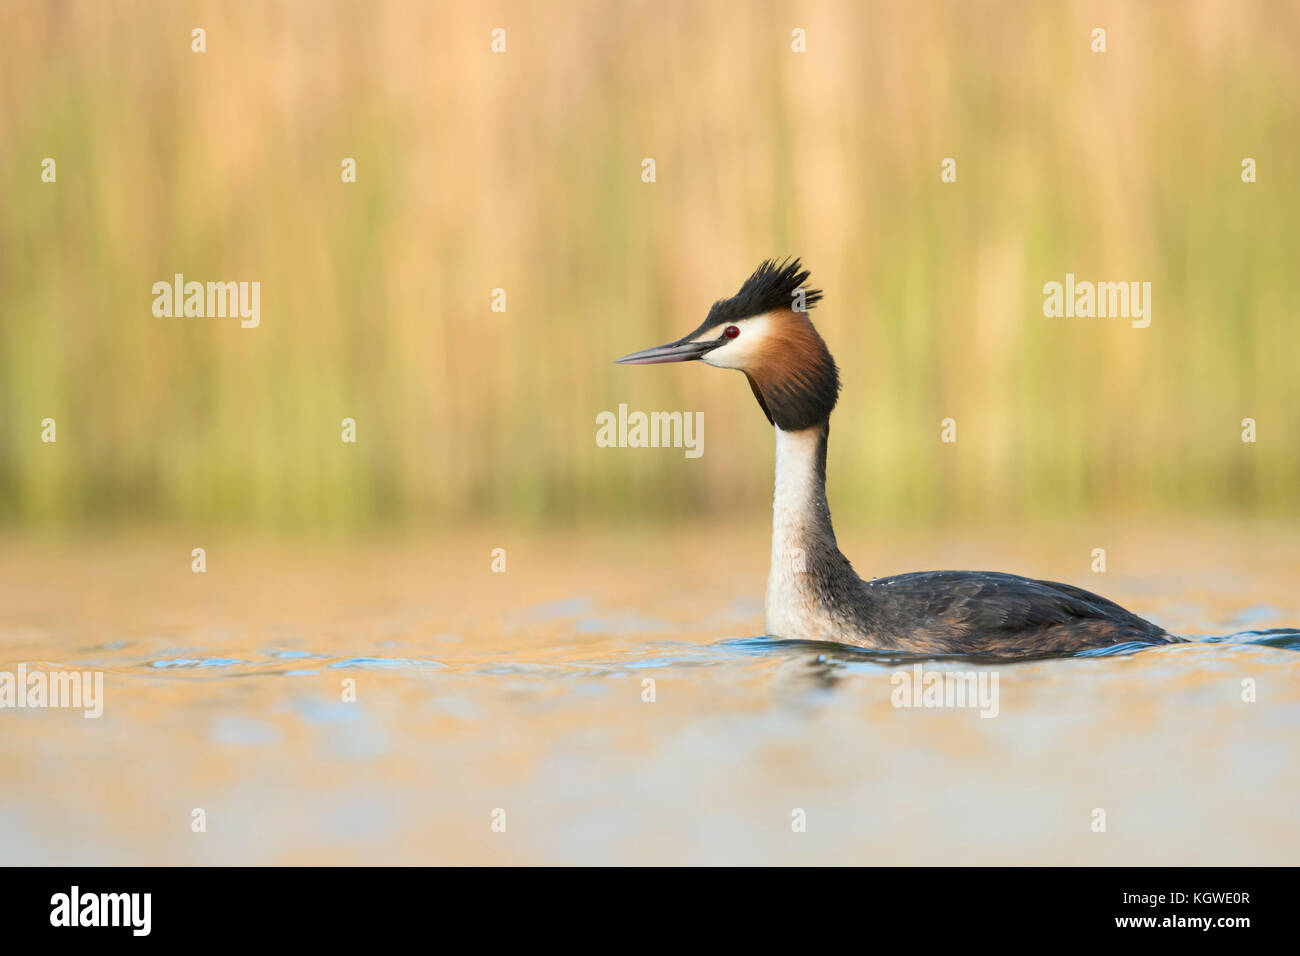 Great Crested Grebe ( Podiceps cristatus ) swimming, stretching its neck, raised head, attentive, in front of bright - Stock Image